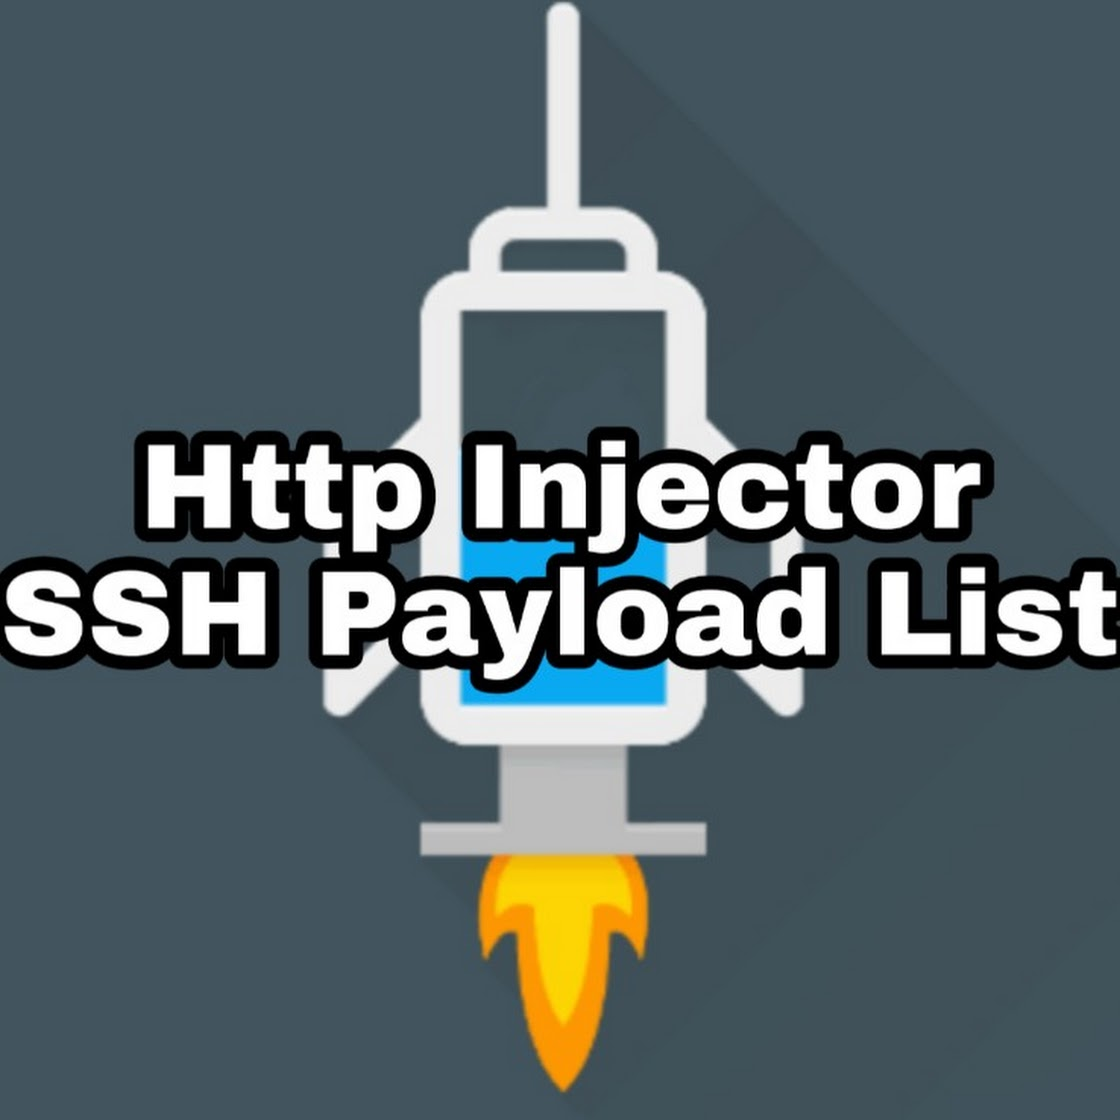 HTTP Injector SSH Free Payload List For Smart Tnt Sun Globe Tm